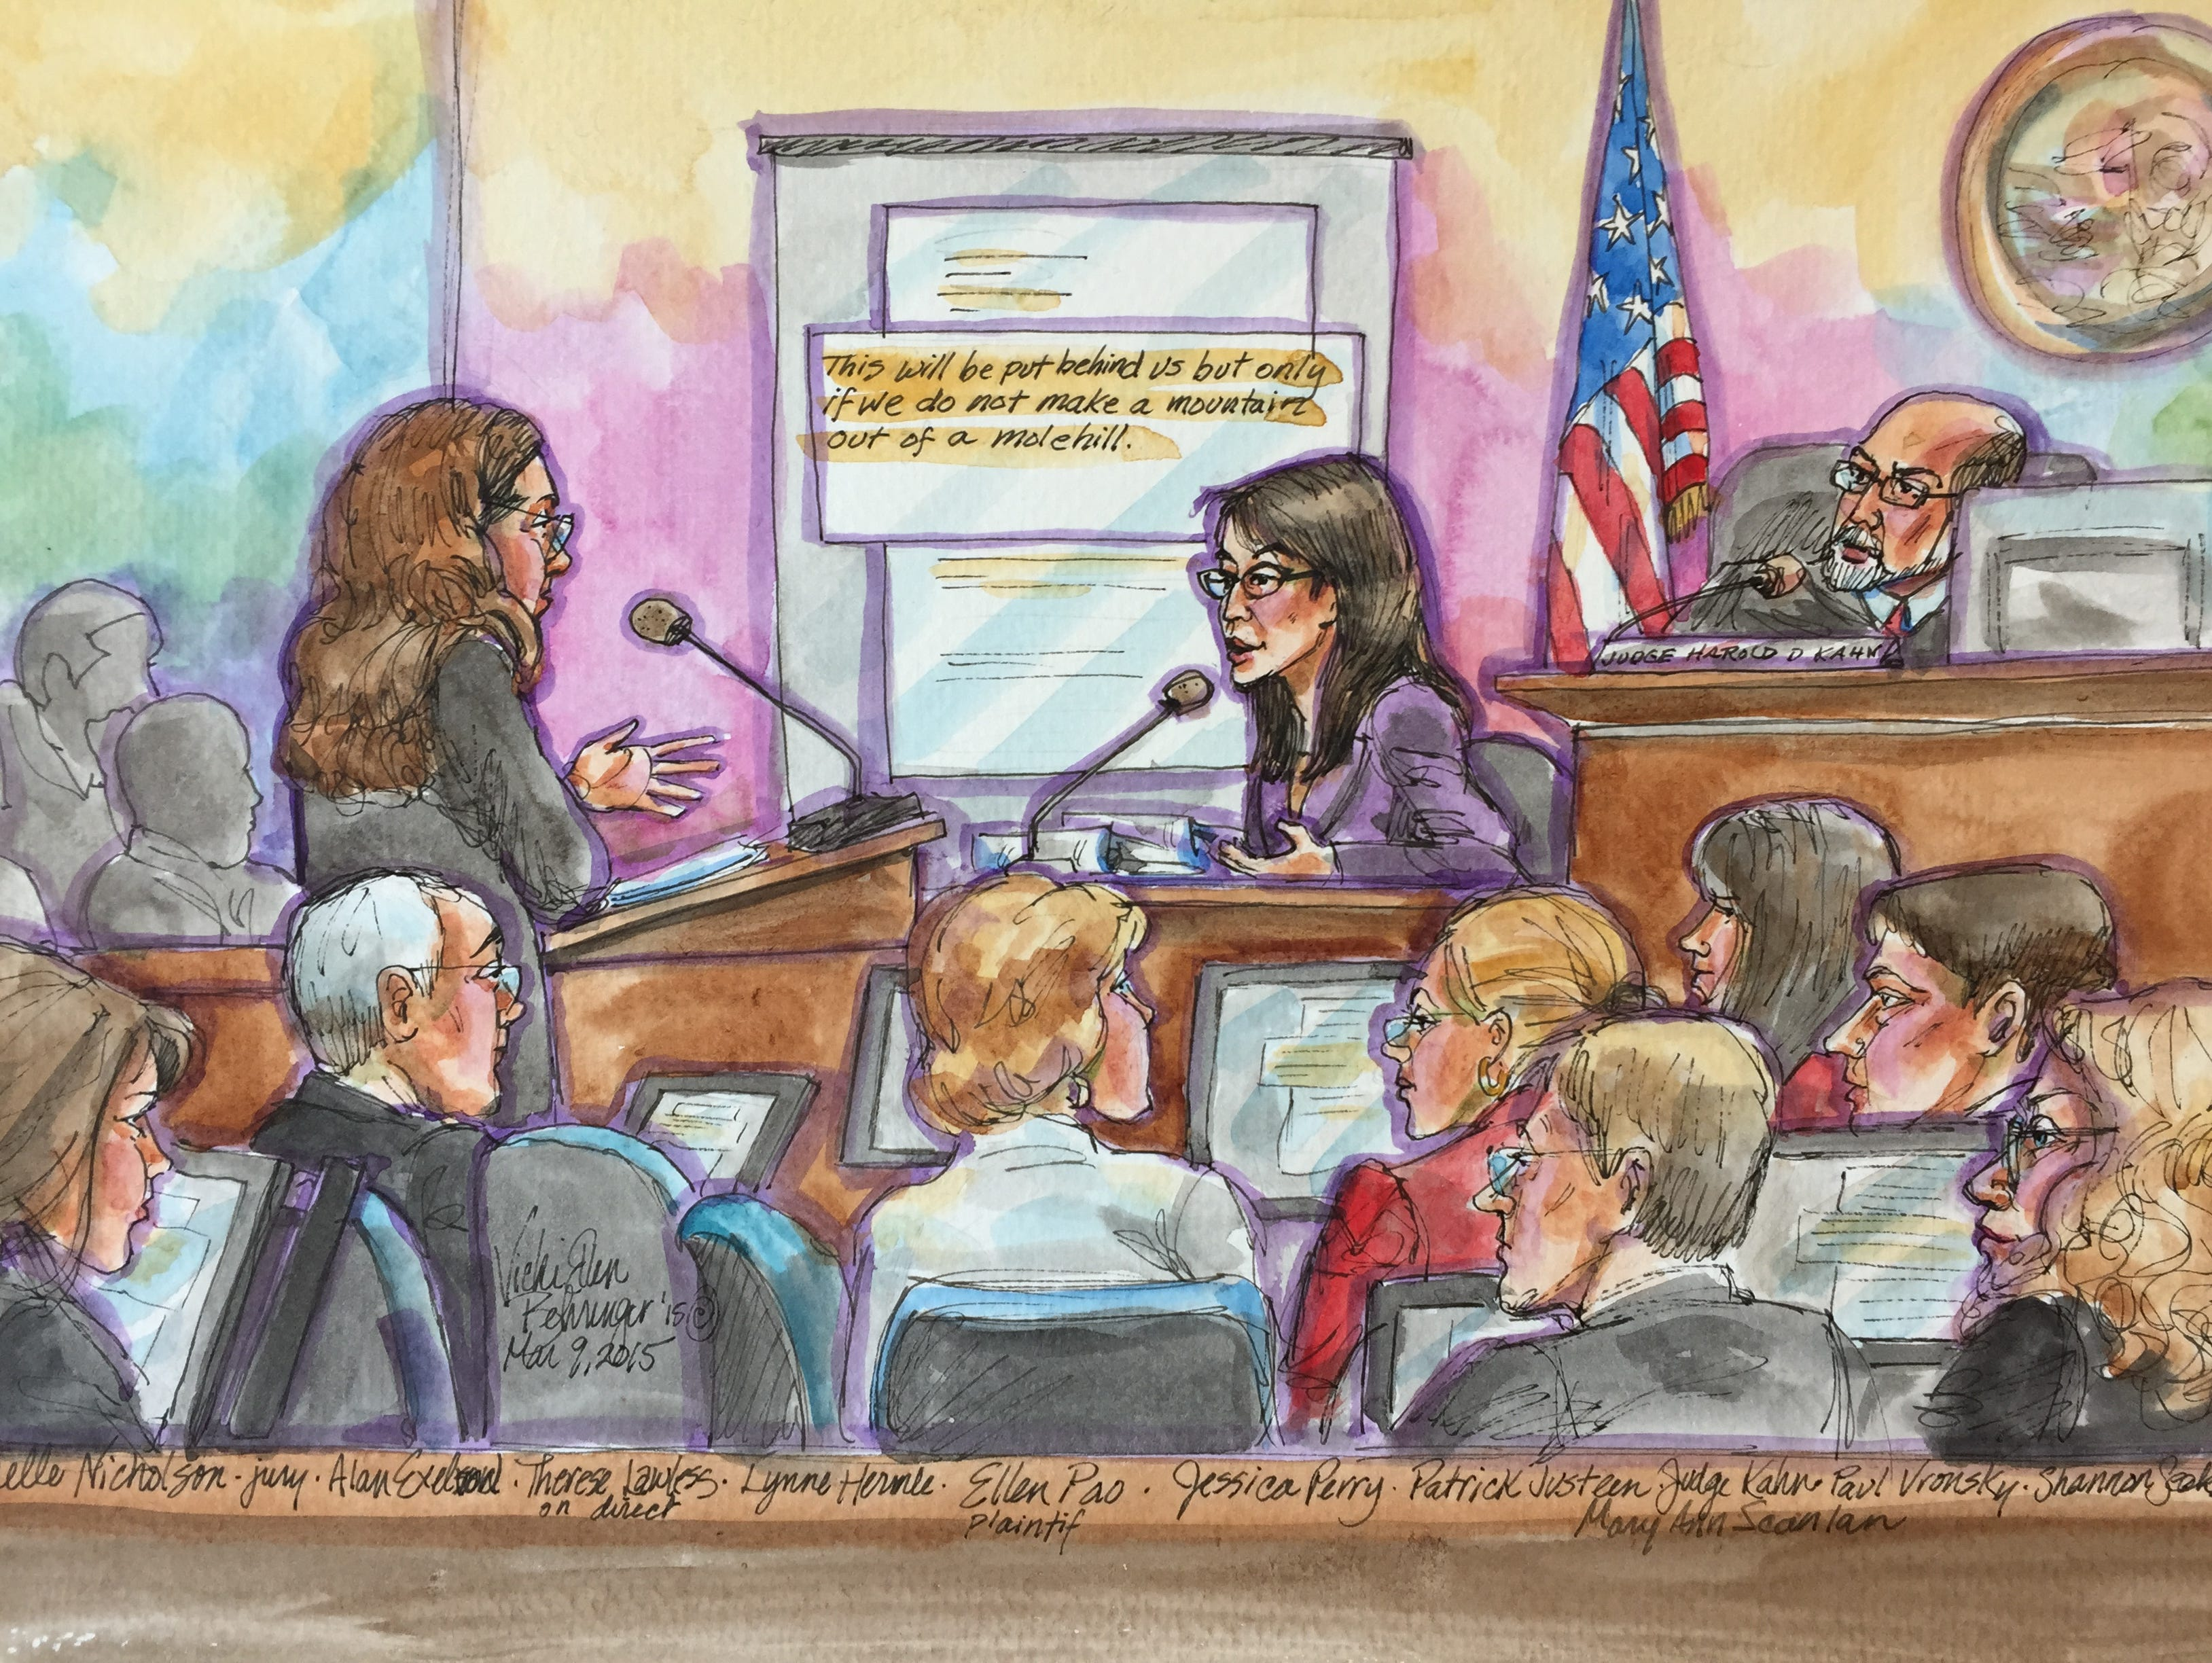 Ellen Pao on the stand in San Francisco Superior Court, being questioned by her lawyer, Therese Lawless. Another of her lawyers, Alan Exelrod, is in the foreground.